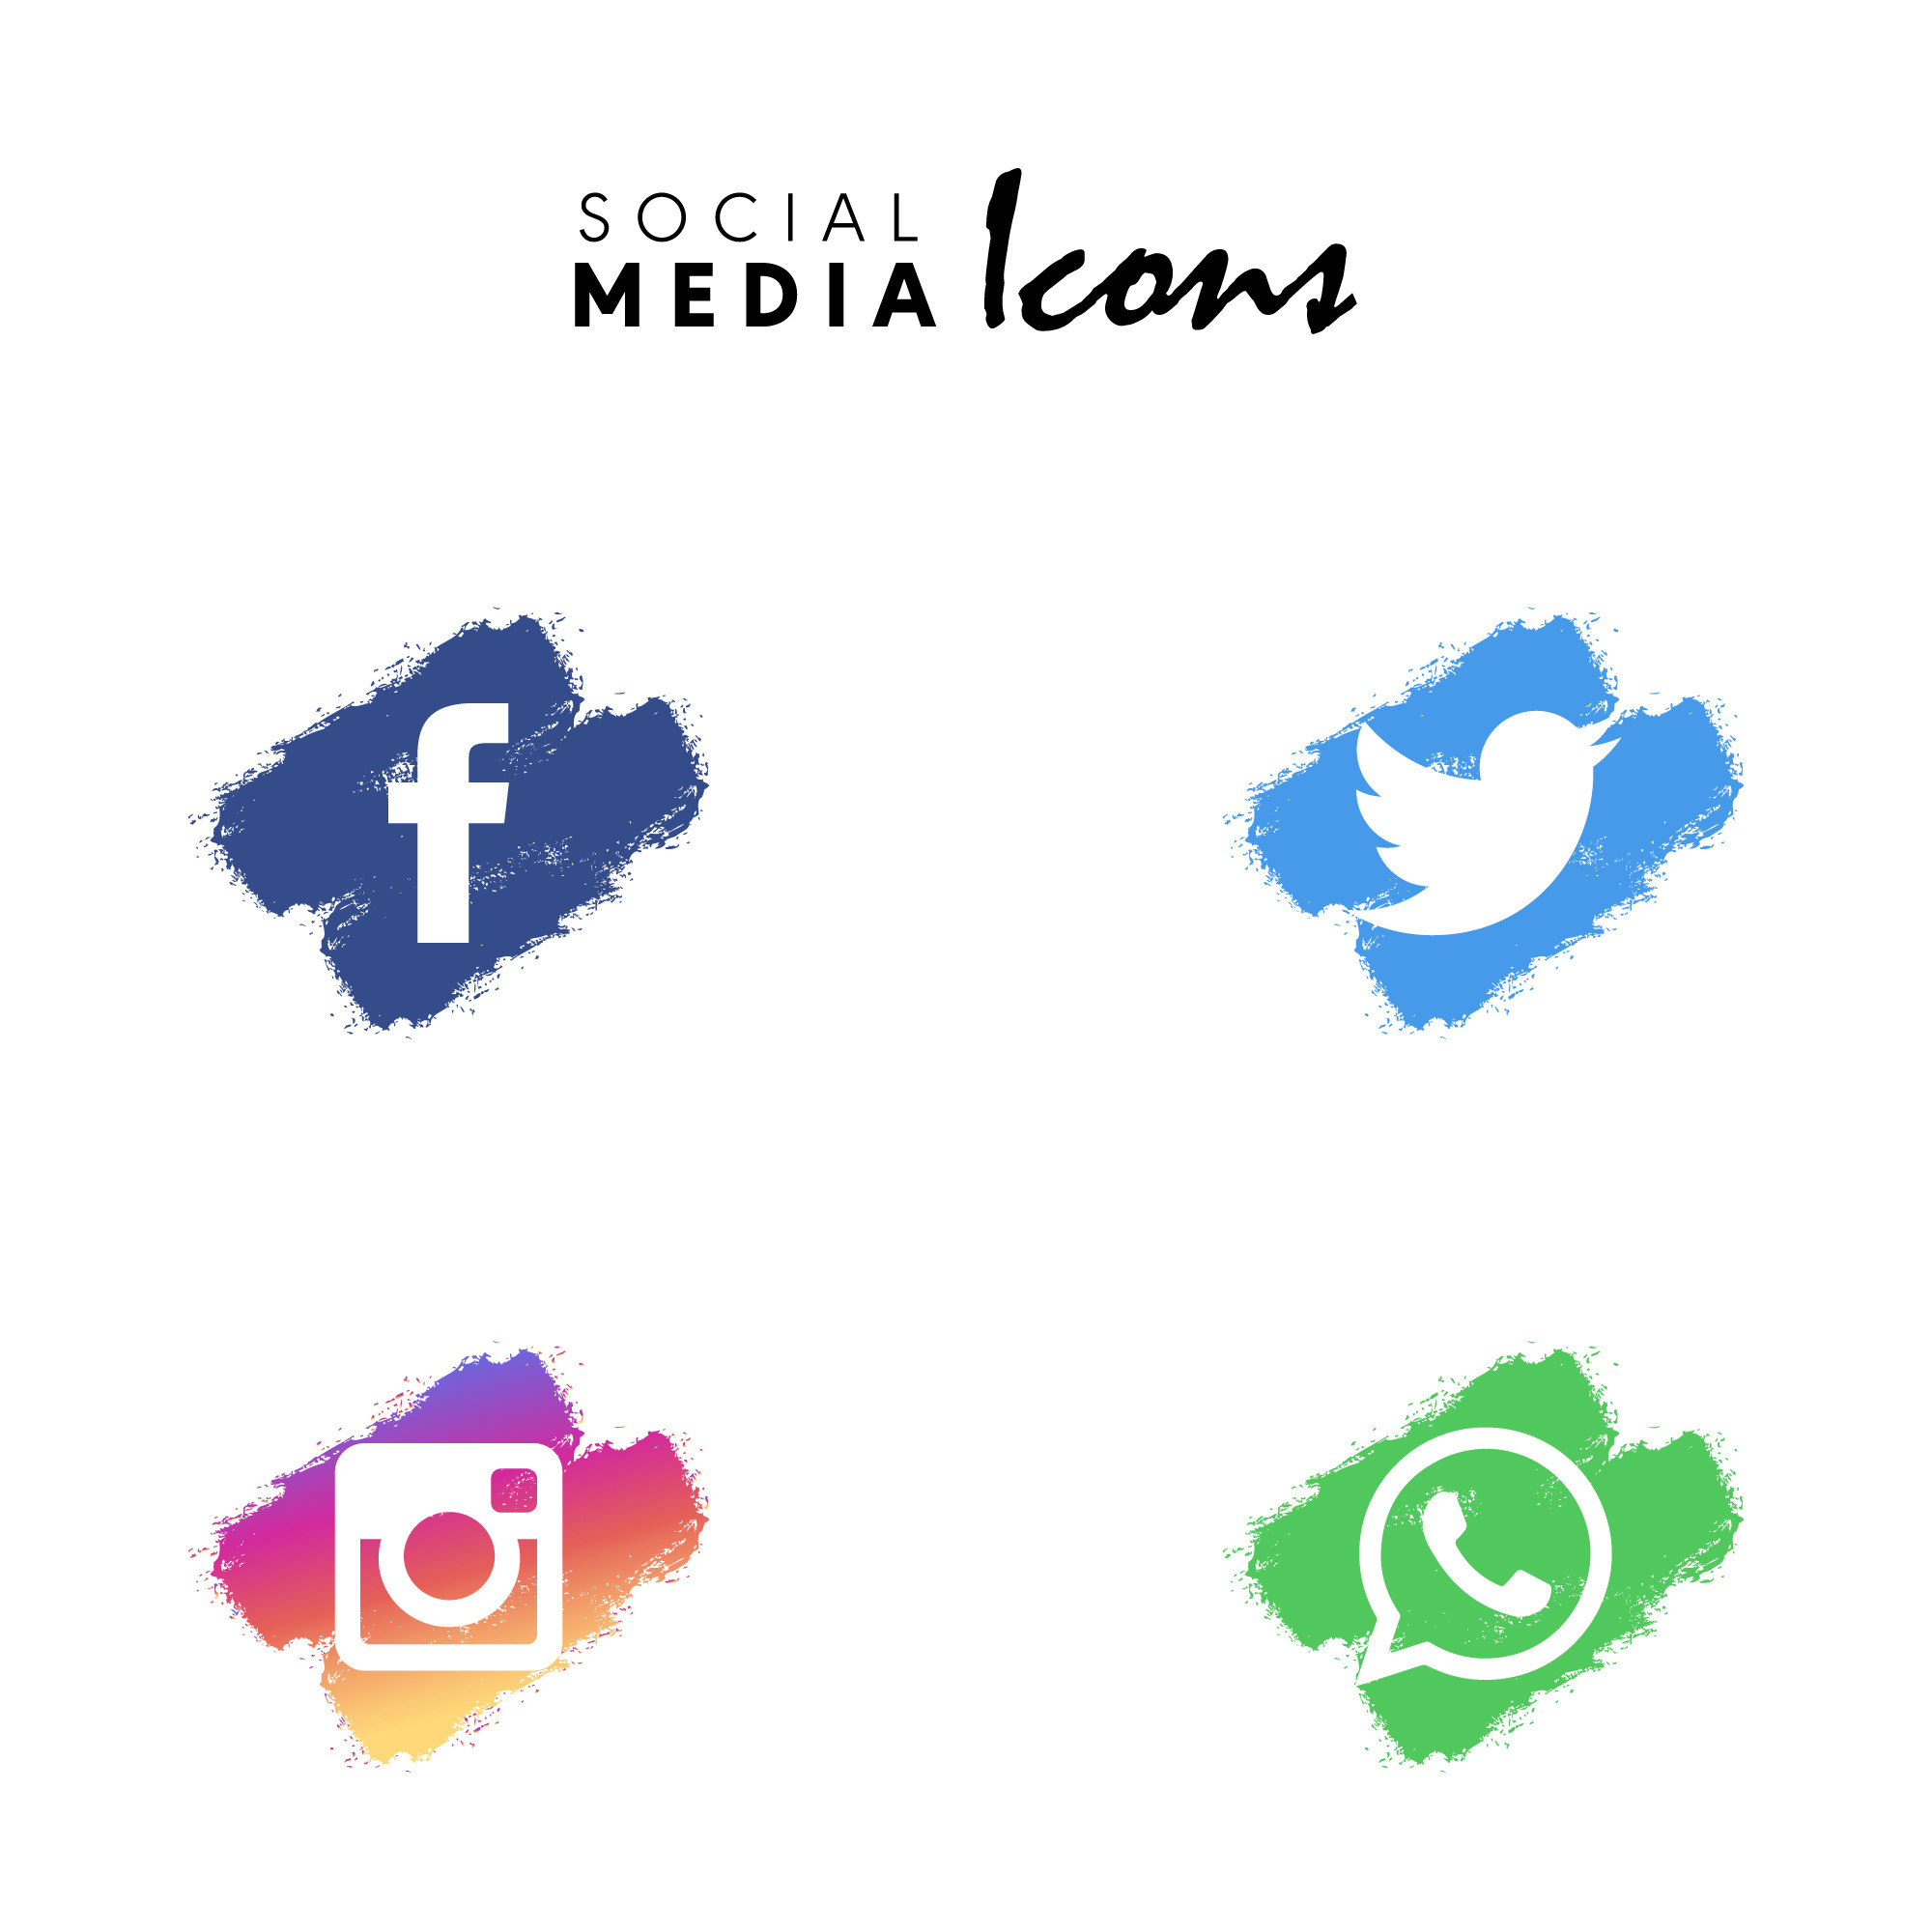 Multicolored dry brush social media icon set collection